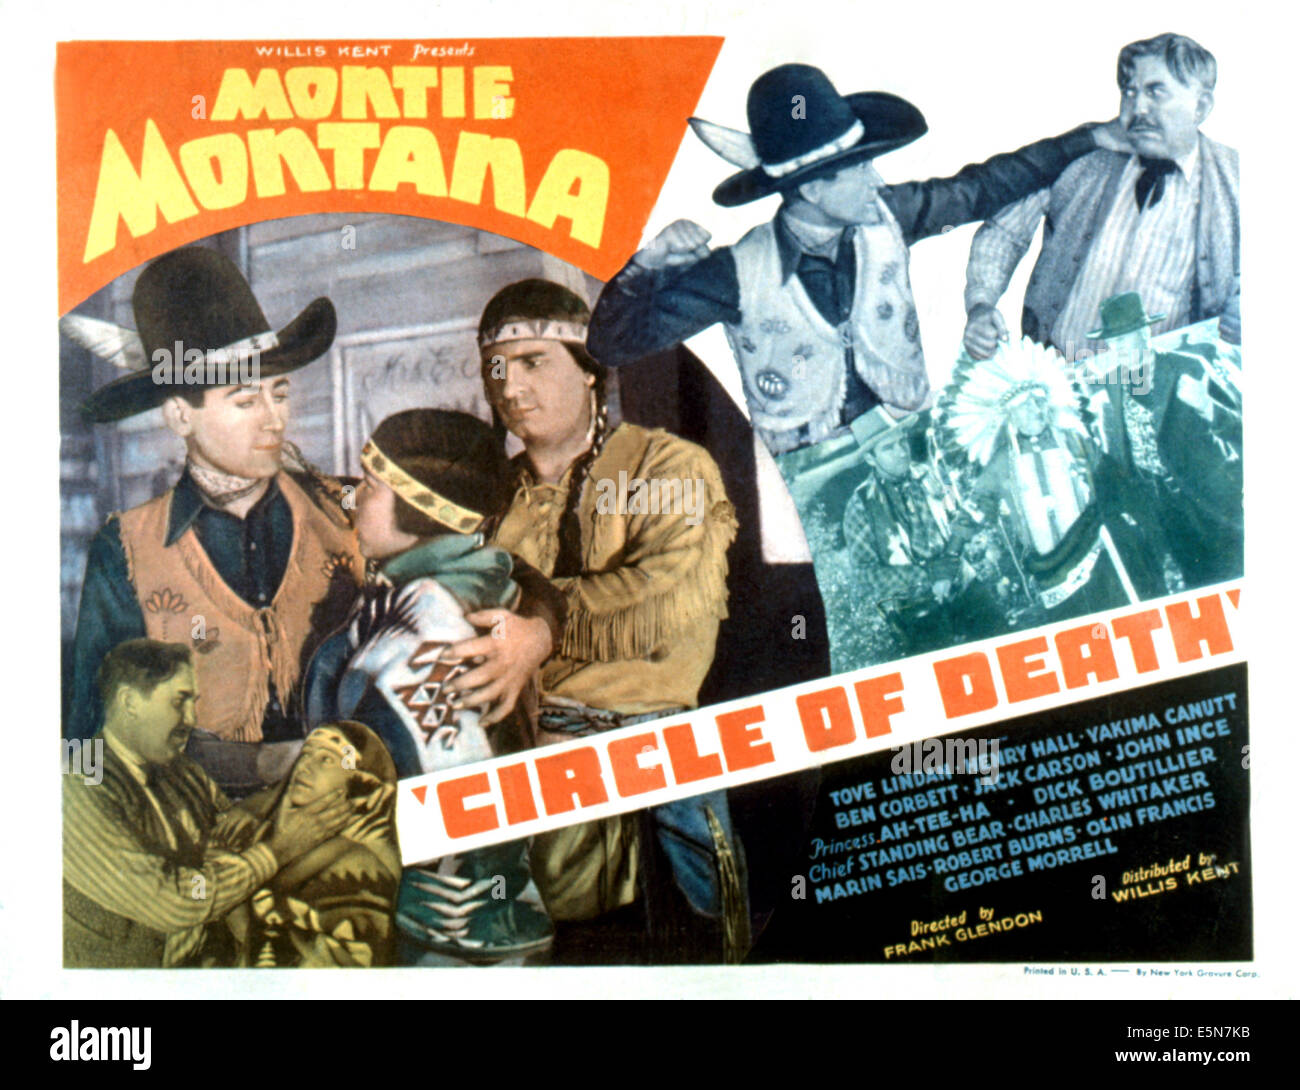 CIRCLE OF DEATH, Montie Montana, Yakima Canutt, Chief Standing Bear, 1935 - Stock Image